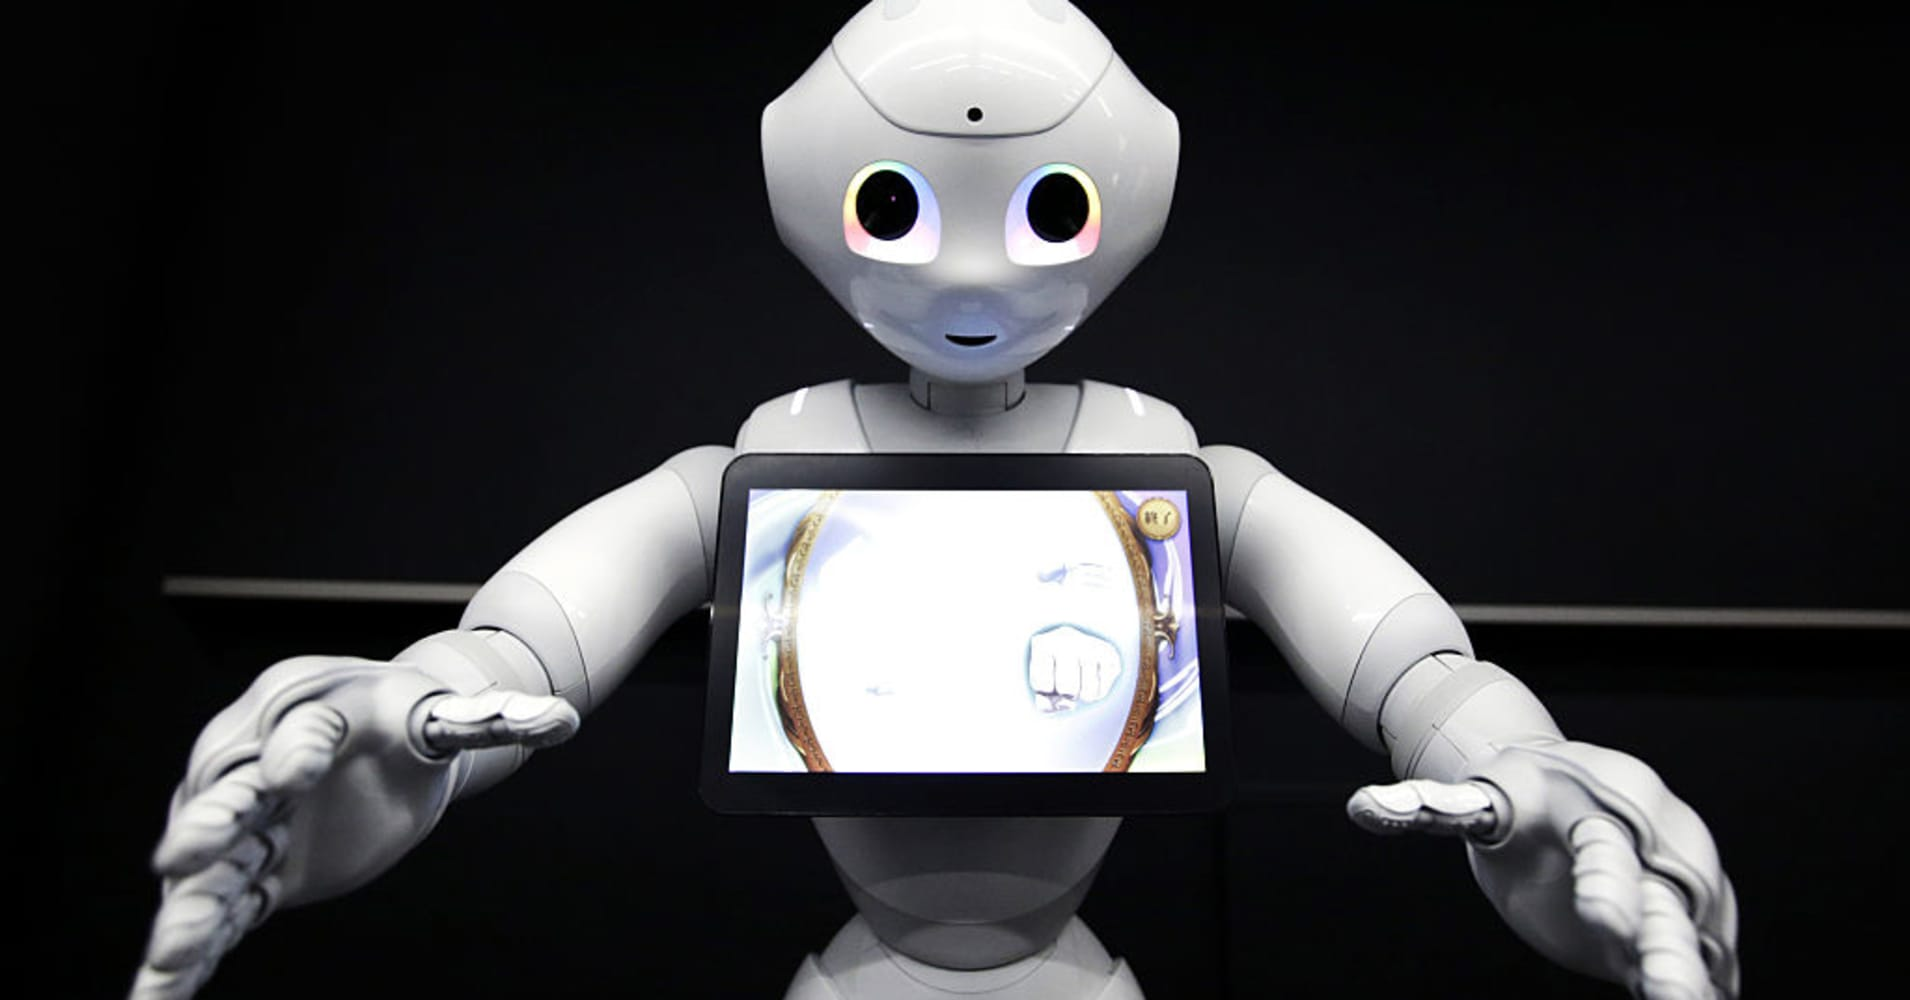 Pepper, the humanoid robot.